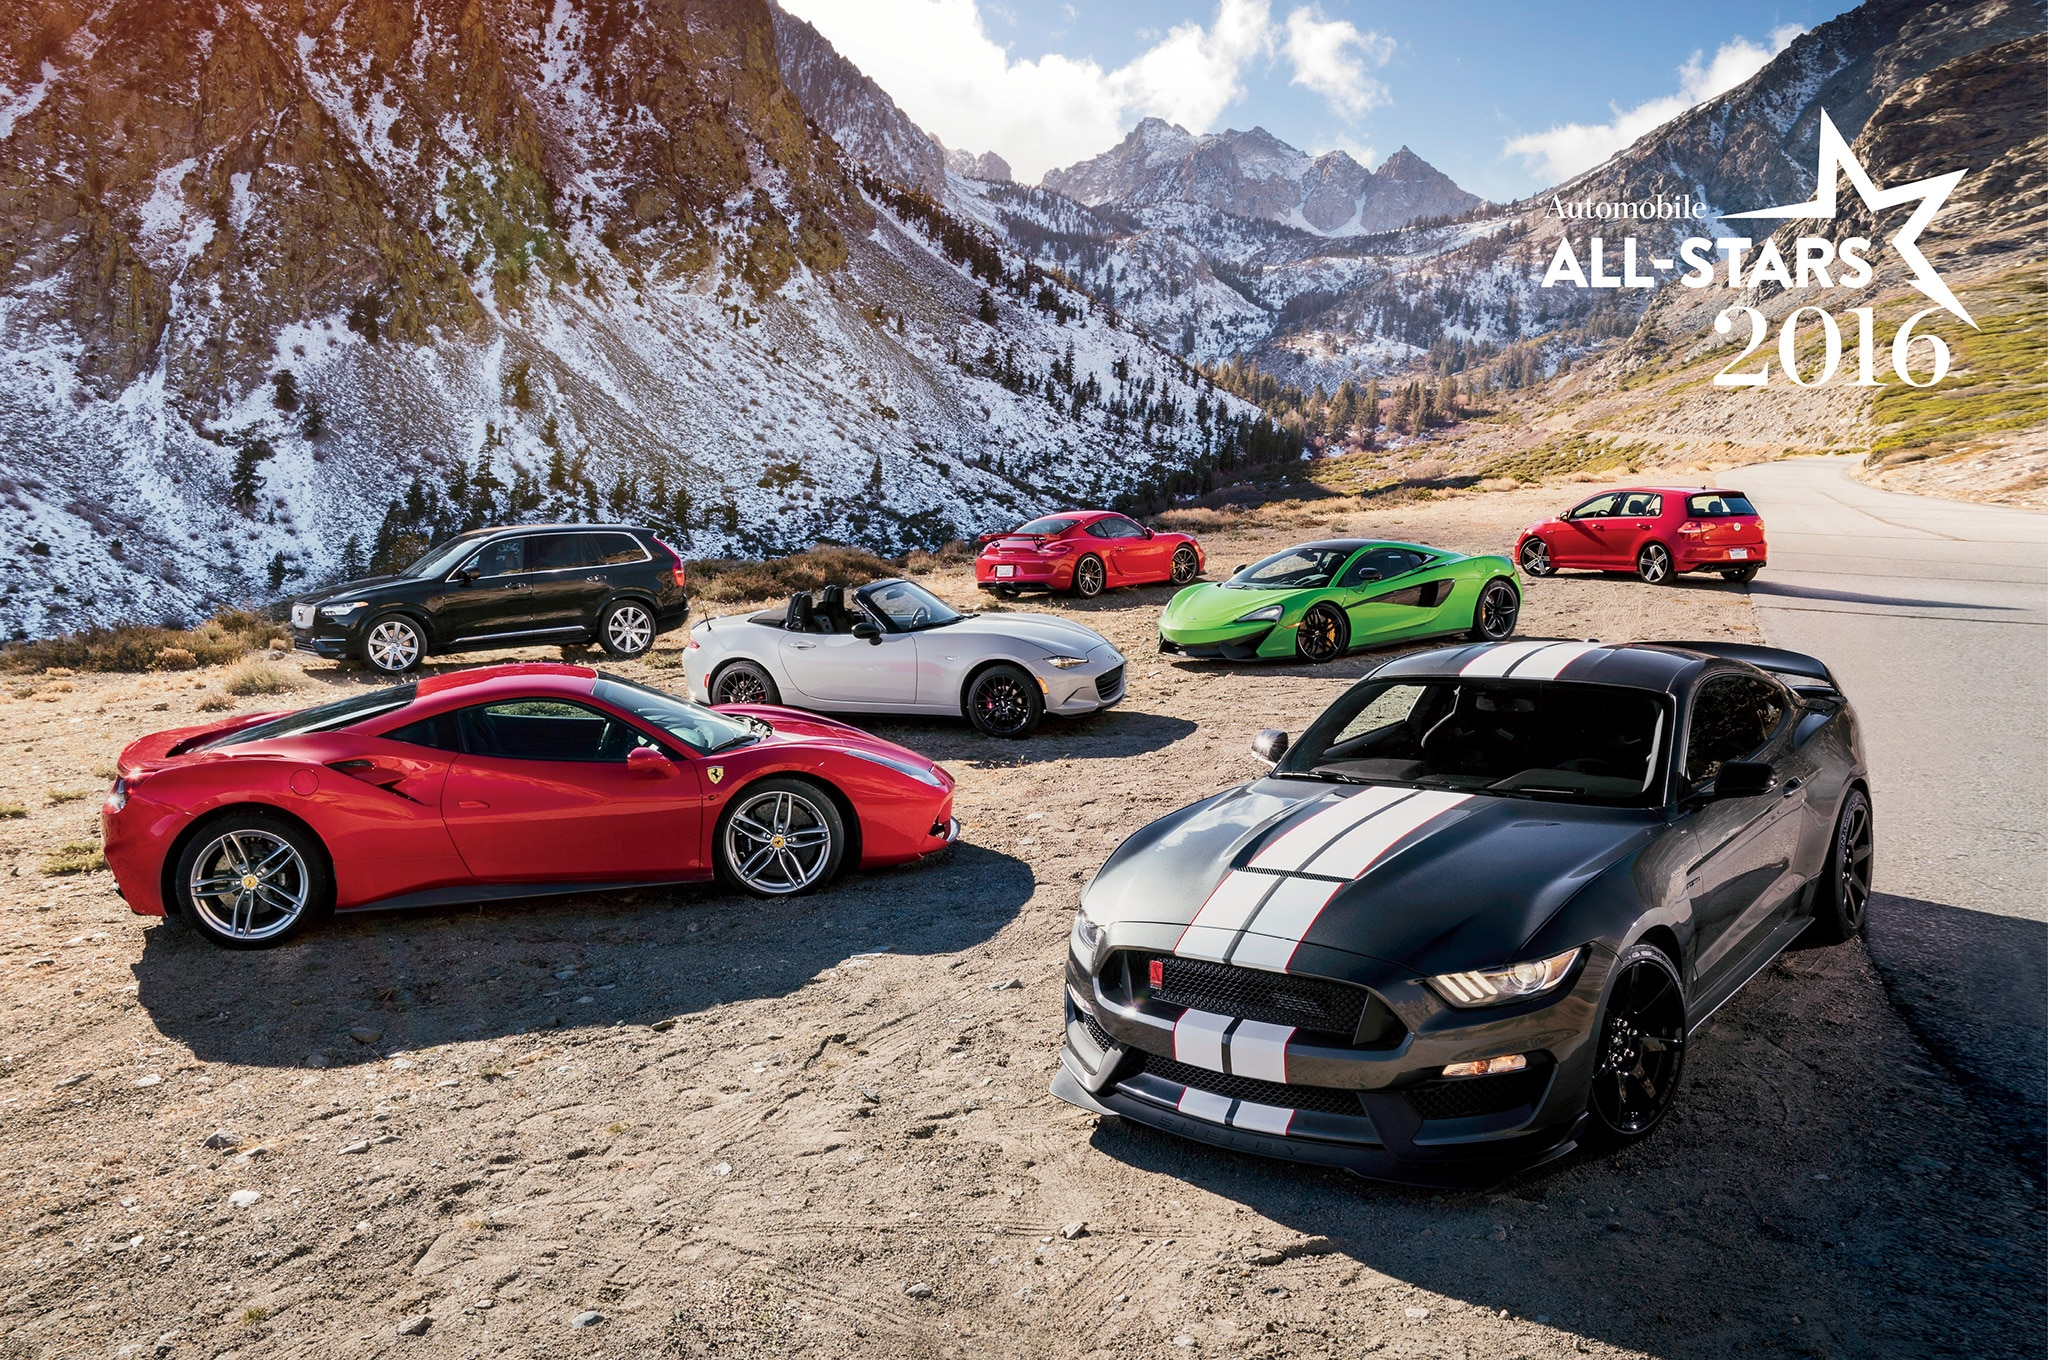 2016 AUTOMOBILE All-Stars: The Magnificent 7